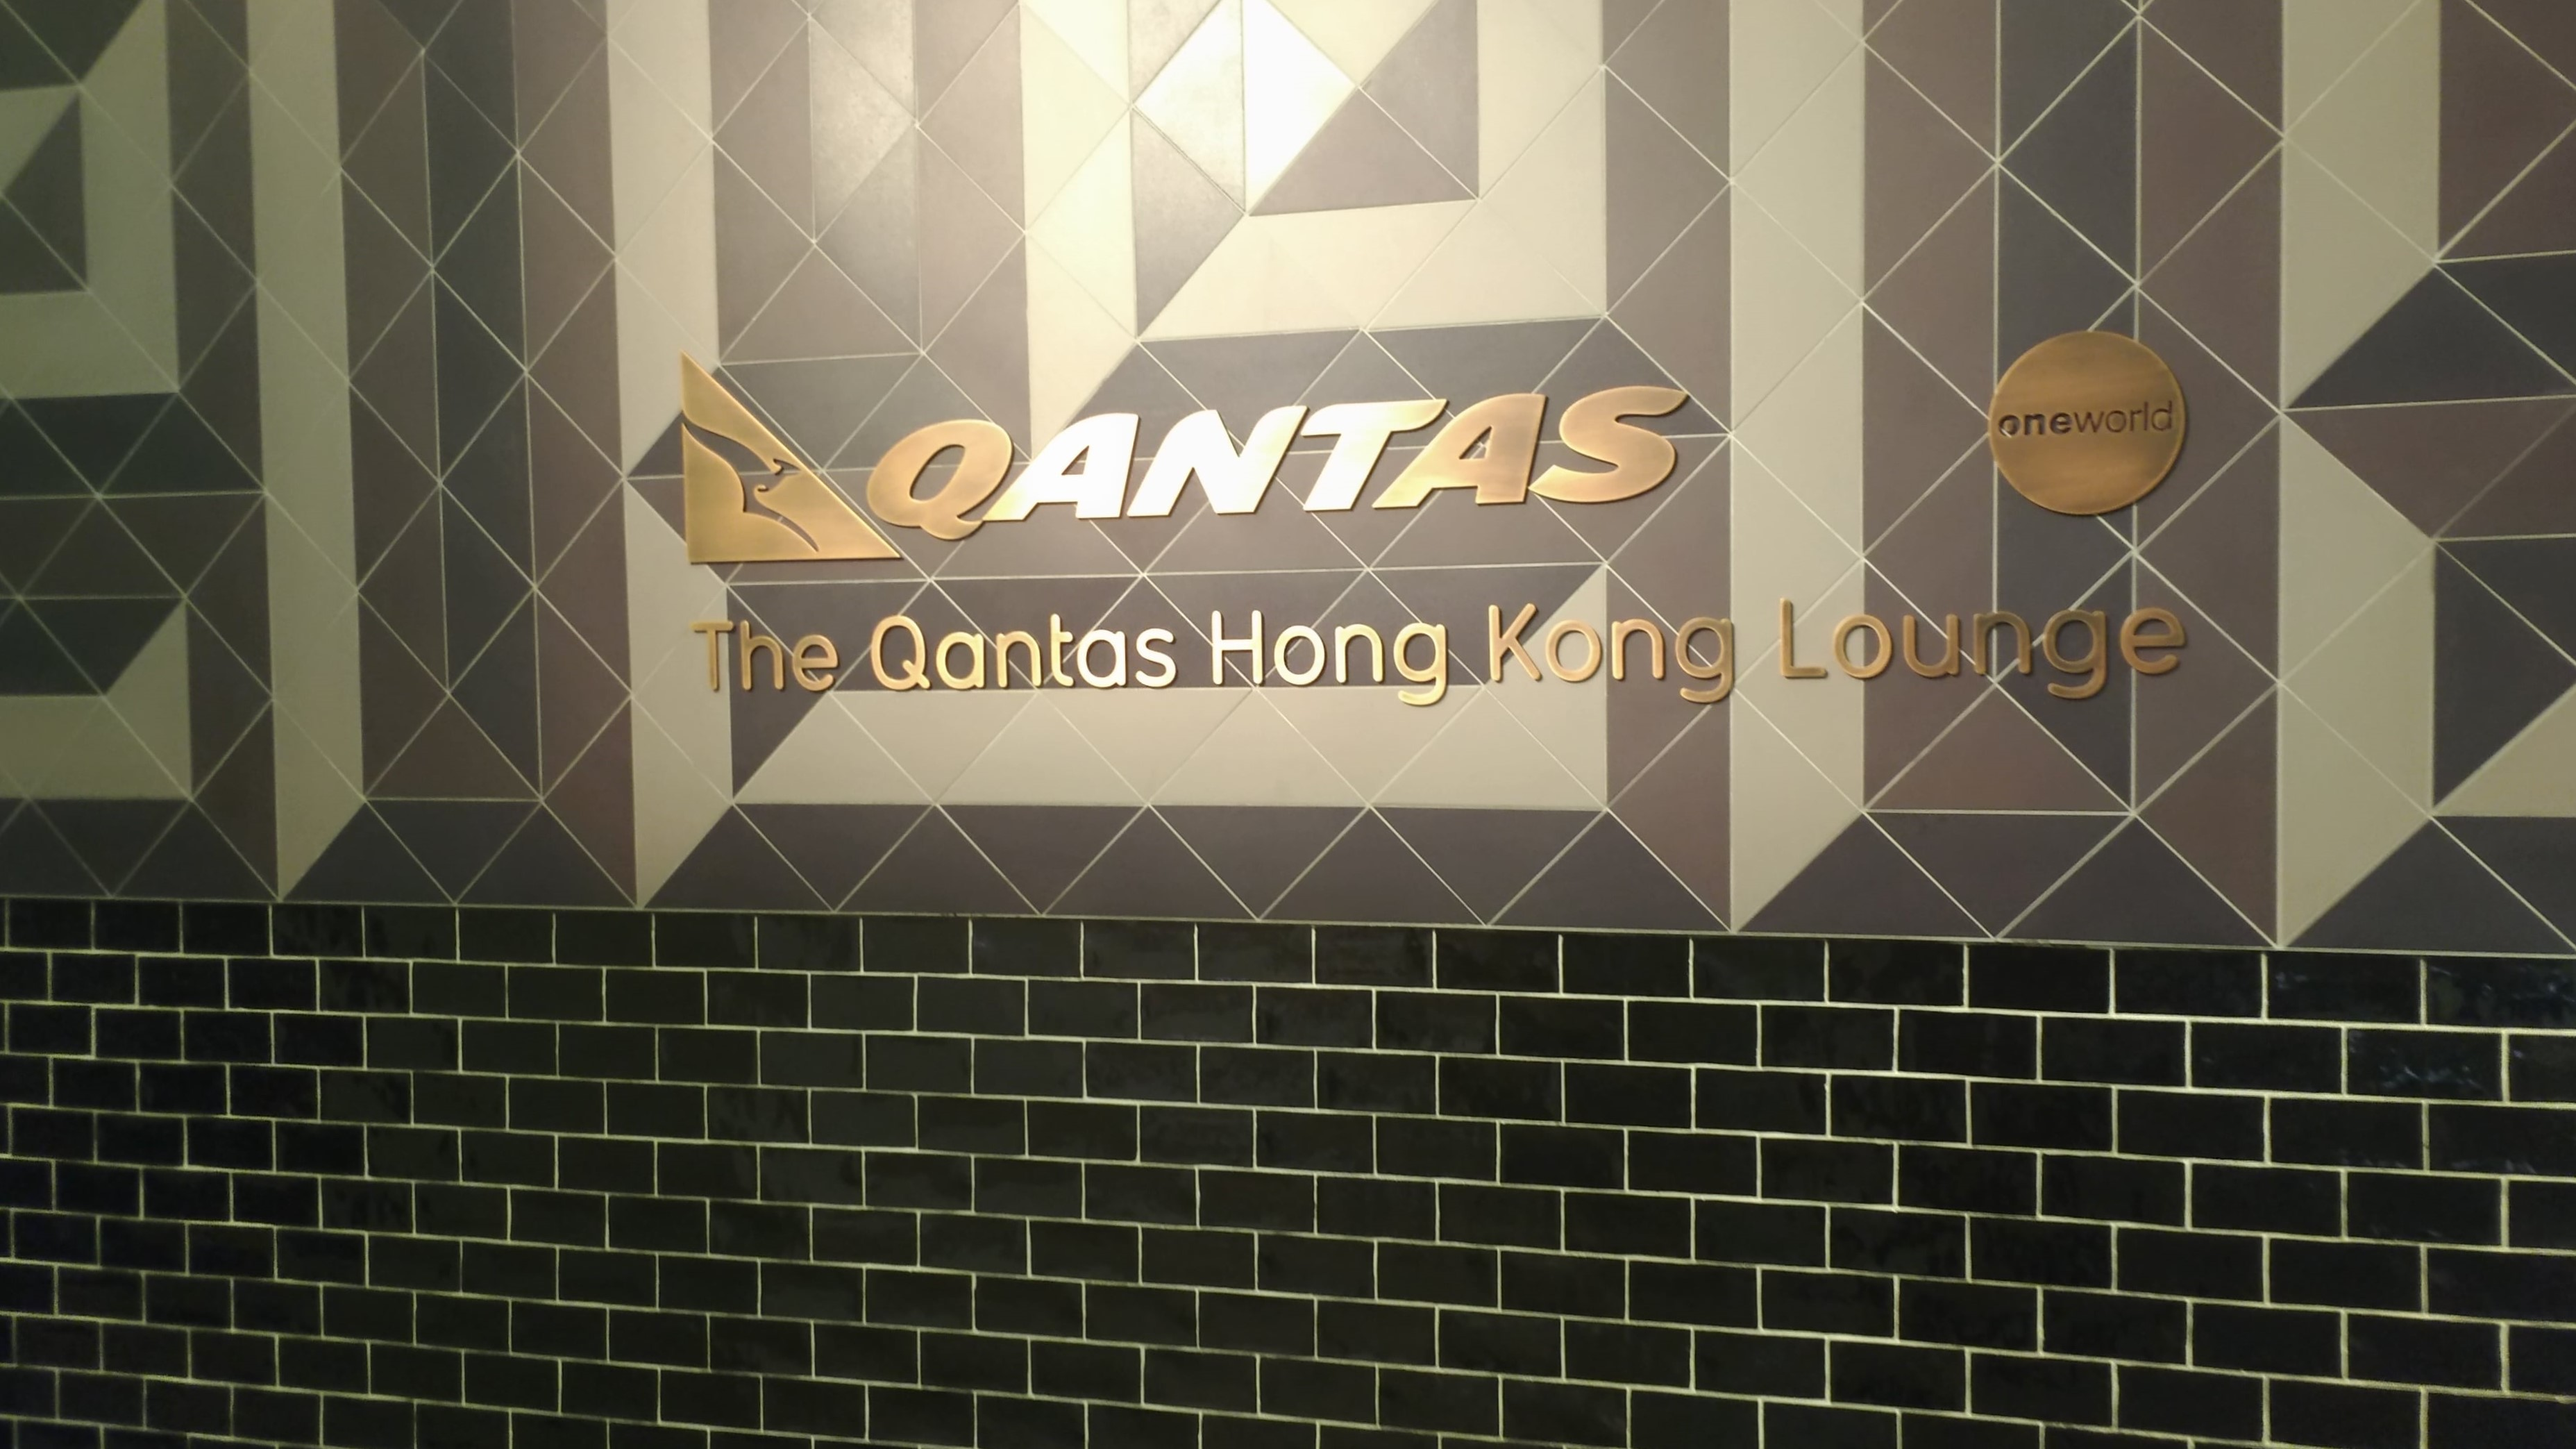 The Qantas Hong Kong Lounge